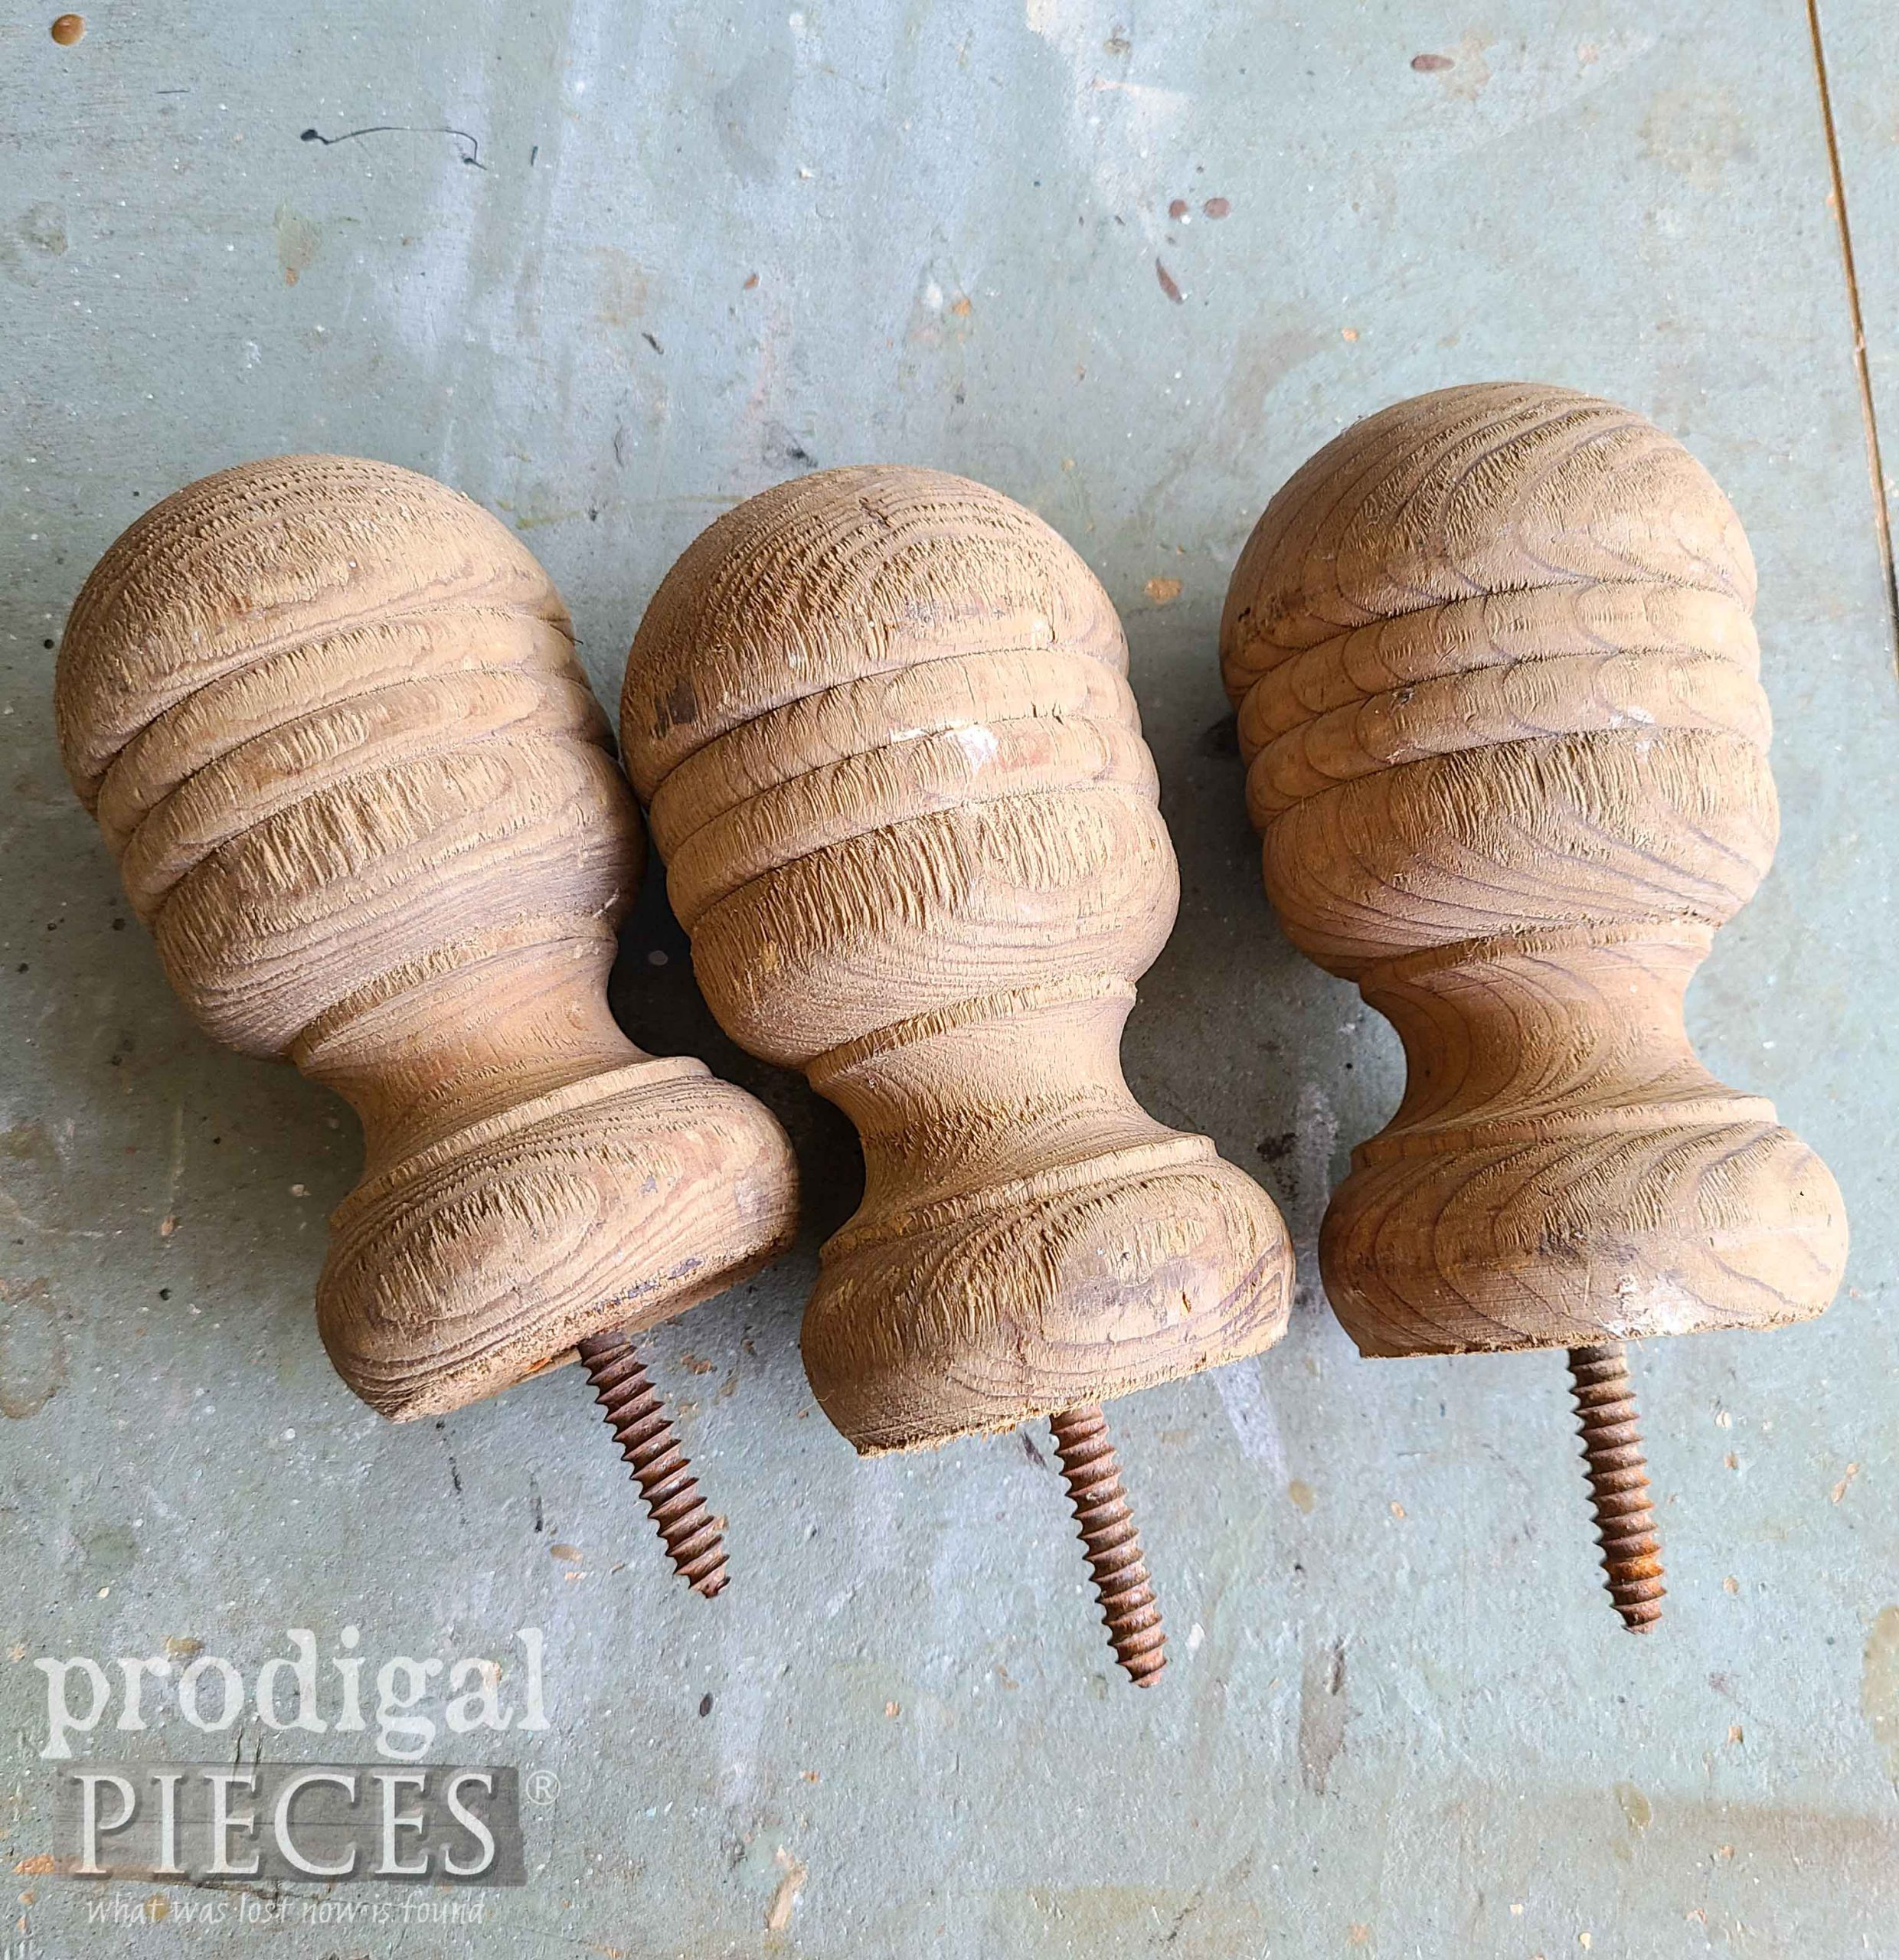 Antique Wooden Finials Before Upcycle | prodigalpieces.com